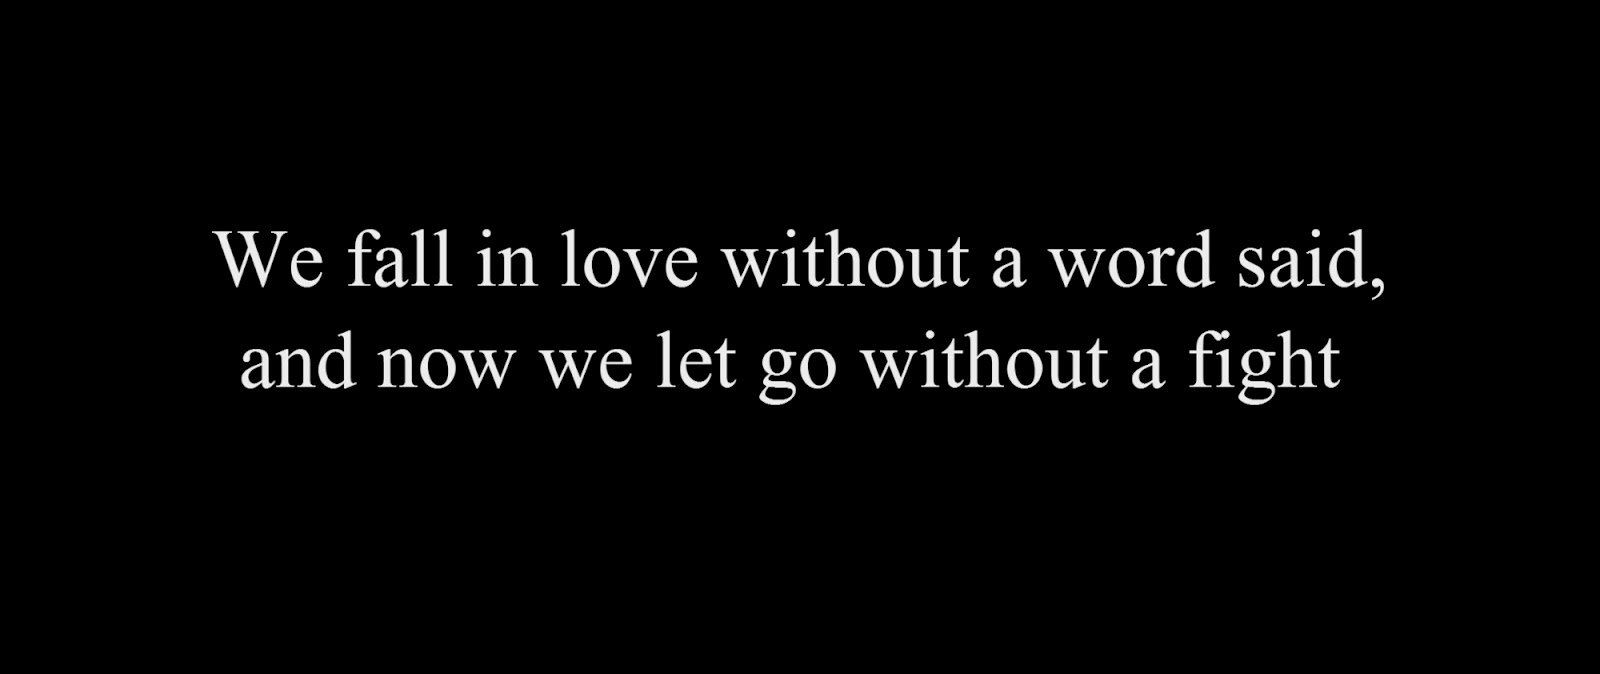 We fall in love without a word said and now we let go without a fight